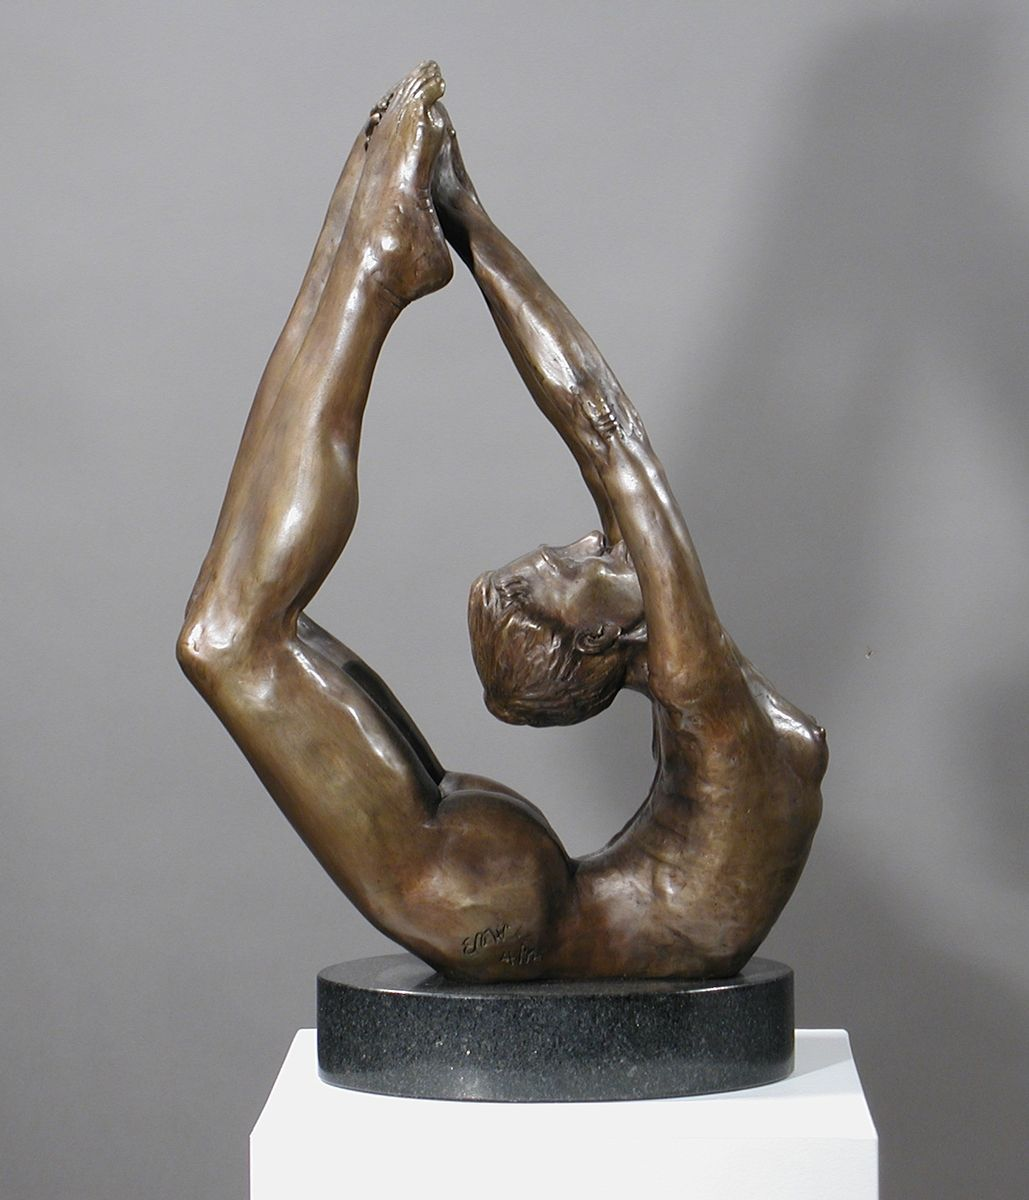 Hand Crafted Bronze Figurative Female Yoga Sculpture By